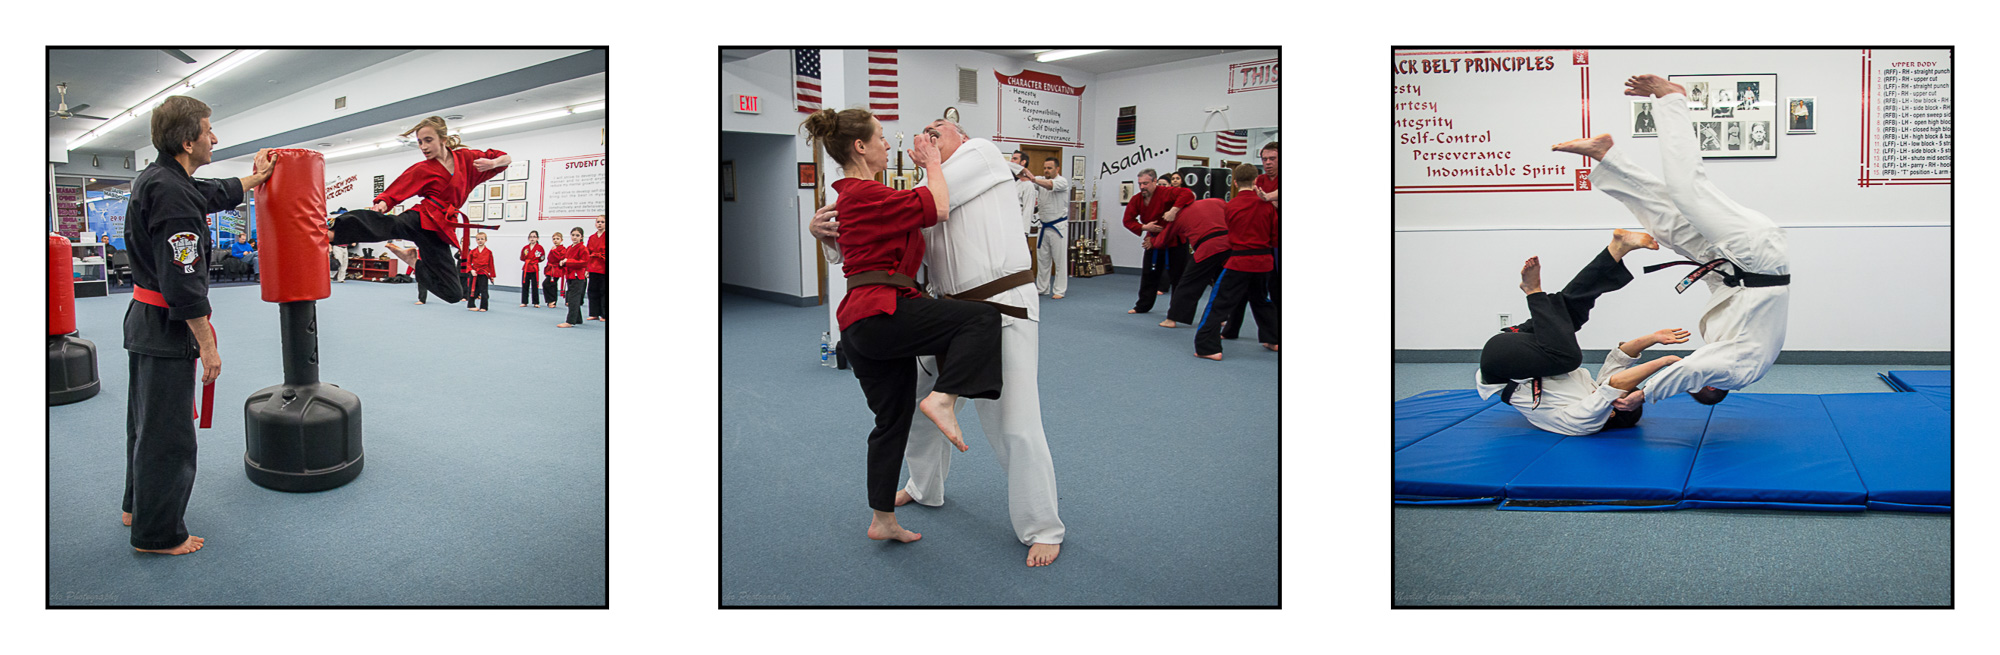 Image of self-defense